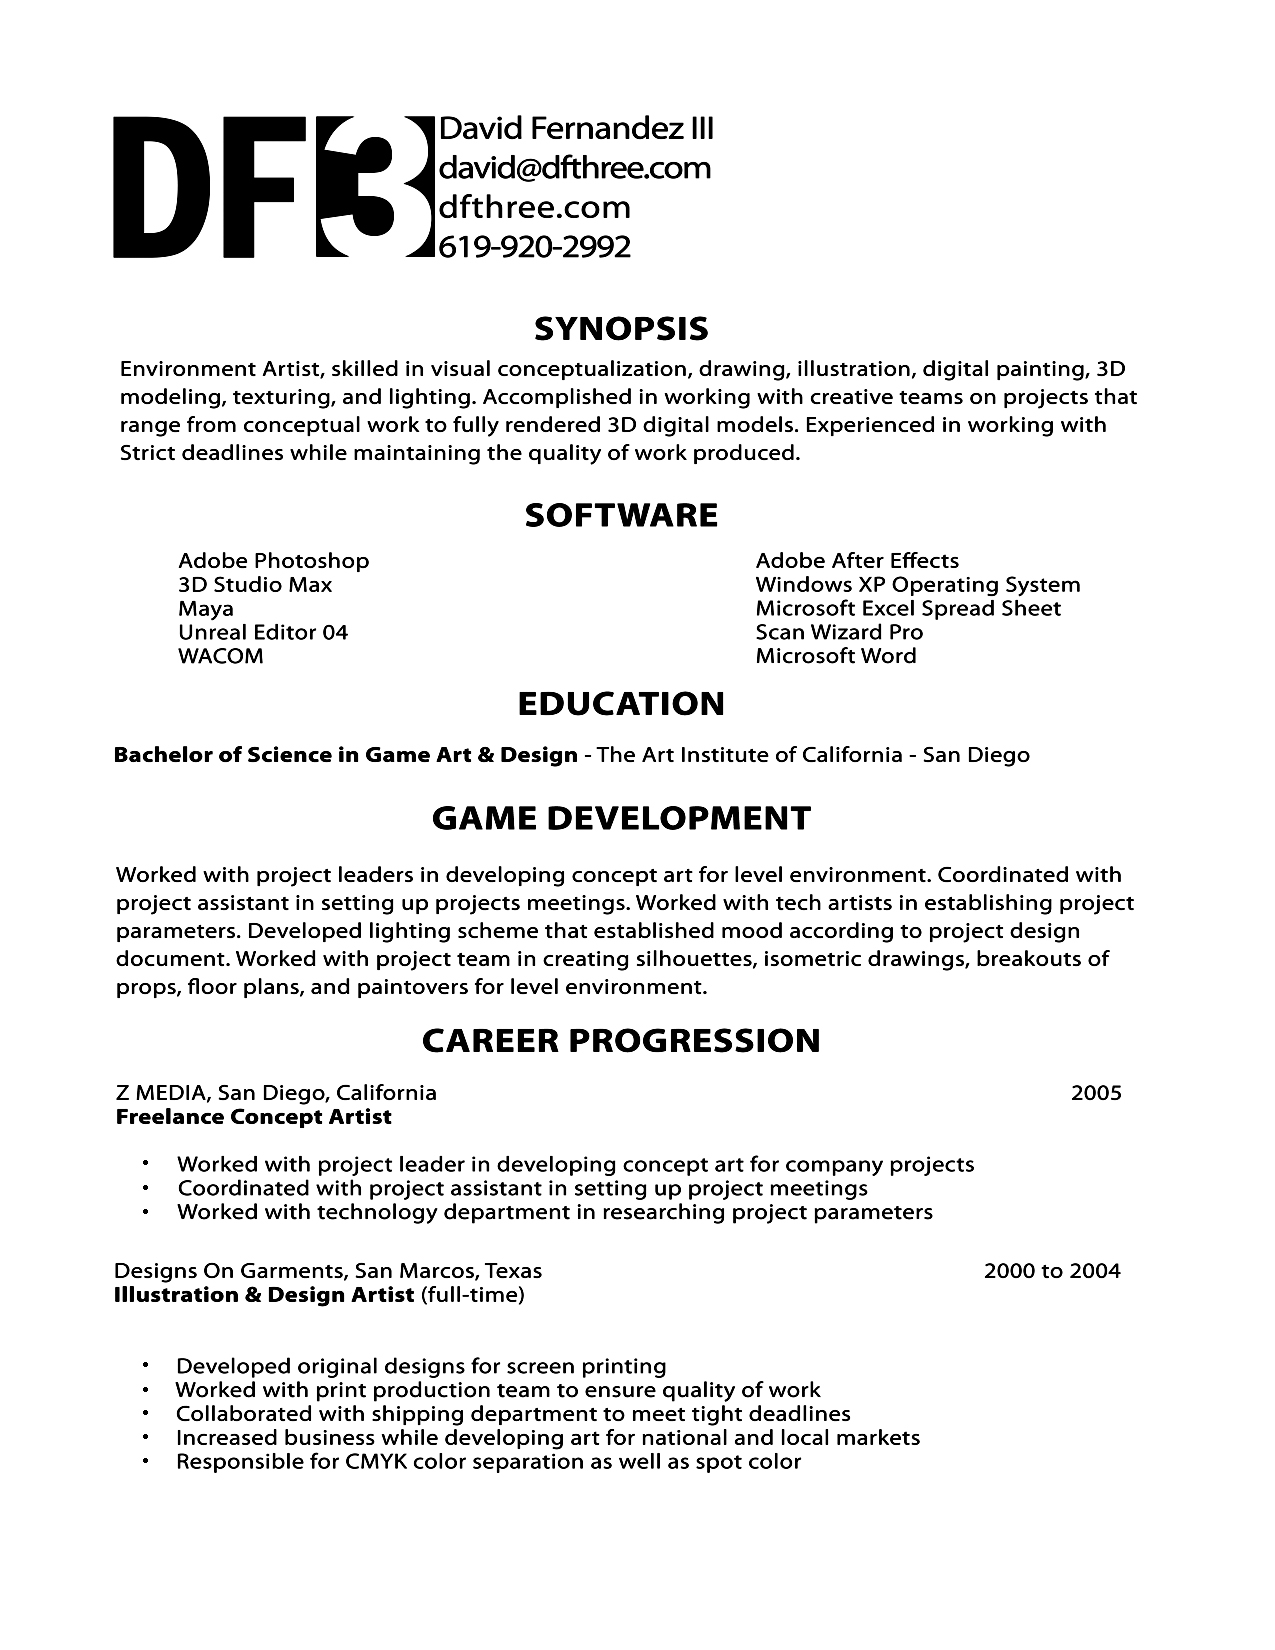 Opposenewapstandardsus  Marvelous Game Developer Resume Game Tester Resume Sample Game Tester  With Gorgeous Better Jobs Faster With Breathtaking Samples Of Good Resumes Also Resume Database Software In Addition Firefighter Resume Objective And Fill Out A Resume As Well As Electrician Resume Examples Additionally Where Can I Make A Free Resume From Kelseymarieco With Opposenewapstandardsus  Gorgeous Game Developer Resume Game Tester Resume Sample Game Tester  With Breathtaking Better Jobs Faster And Marvelous Samples Of Good Resumes Also Resume Database Software In Addition Firefighter Resume Objective From Kelseymarieco